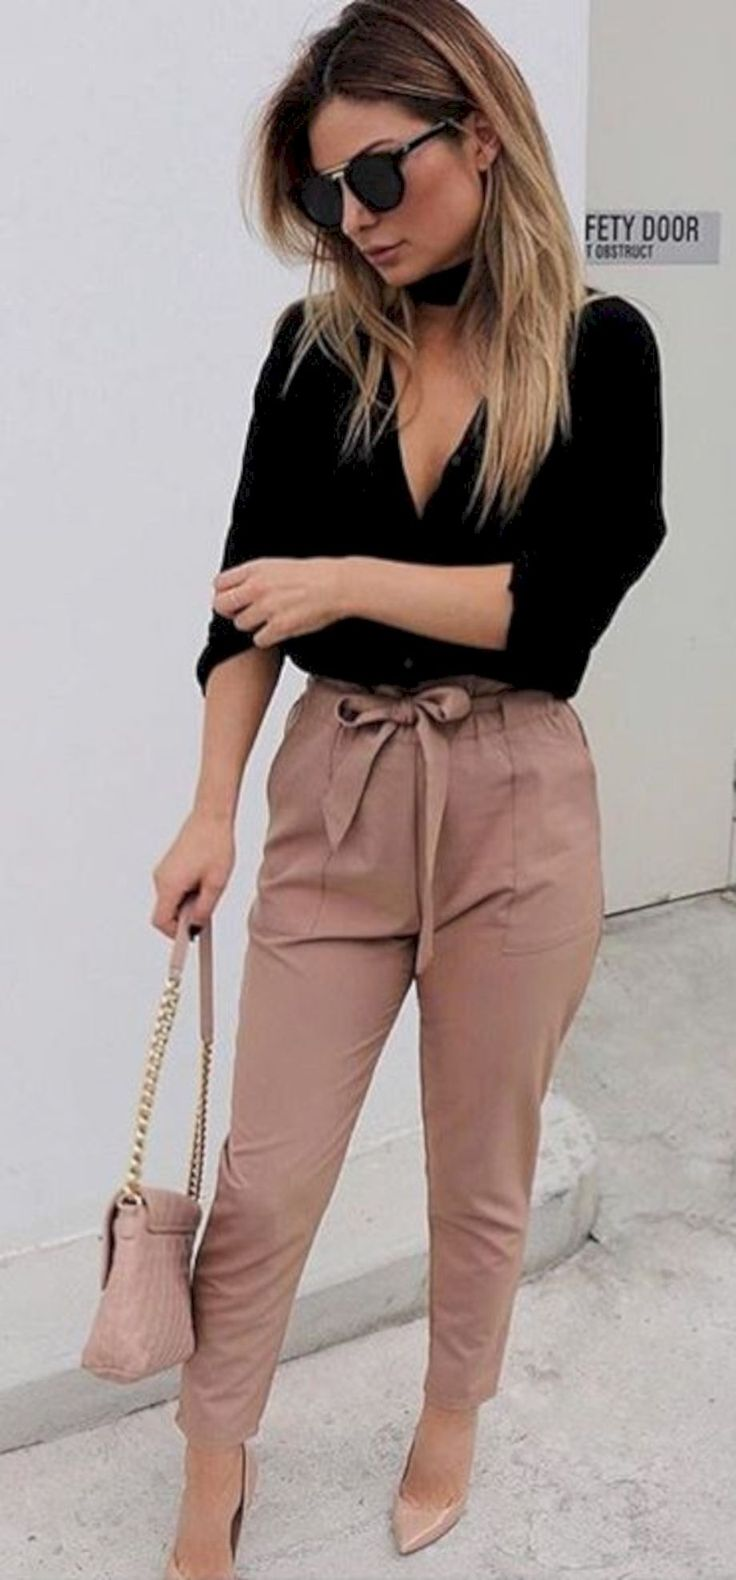 Stunning 61 Trending Fall Outfits Ideas to Fill Out Your Style from https://fashionetter.com/2017/08/12/61-trending-fall-outfits-ideas-fill-style/